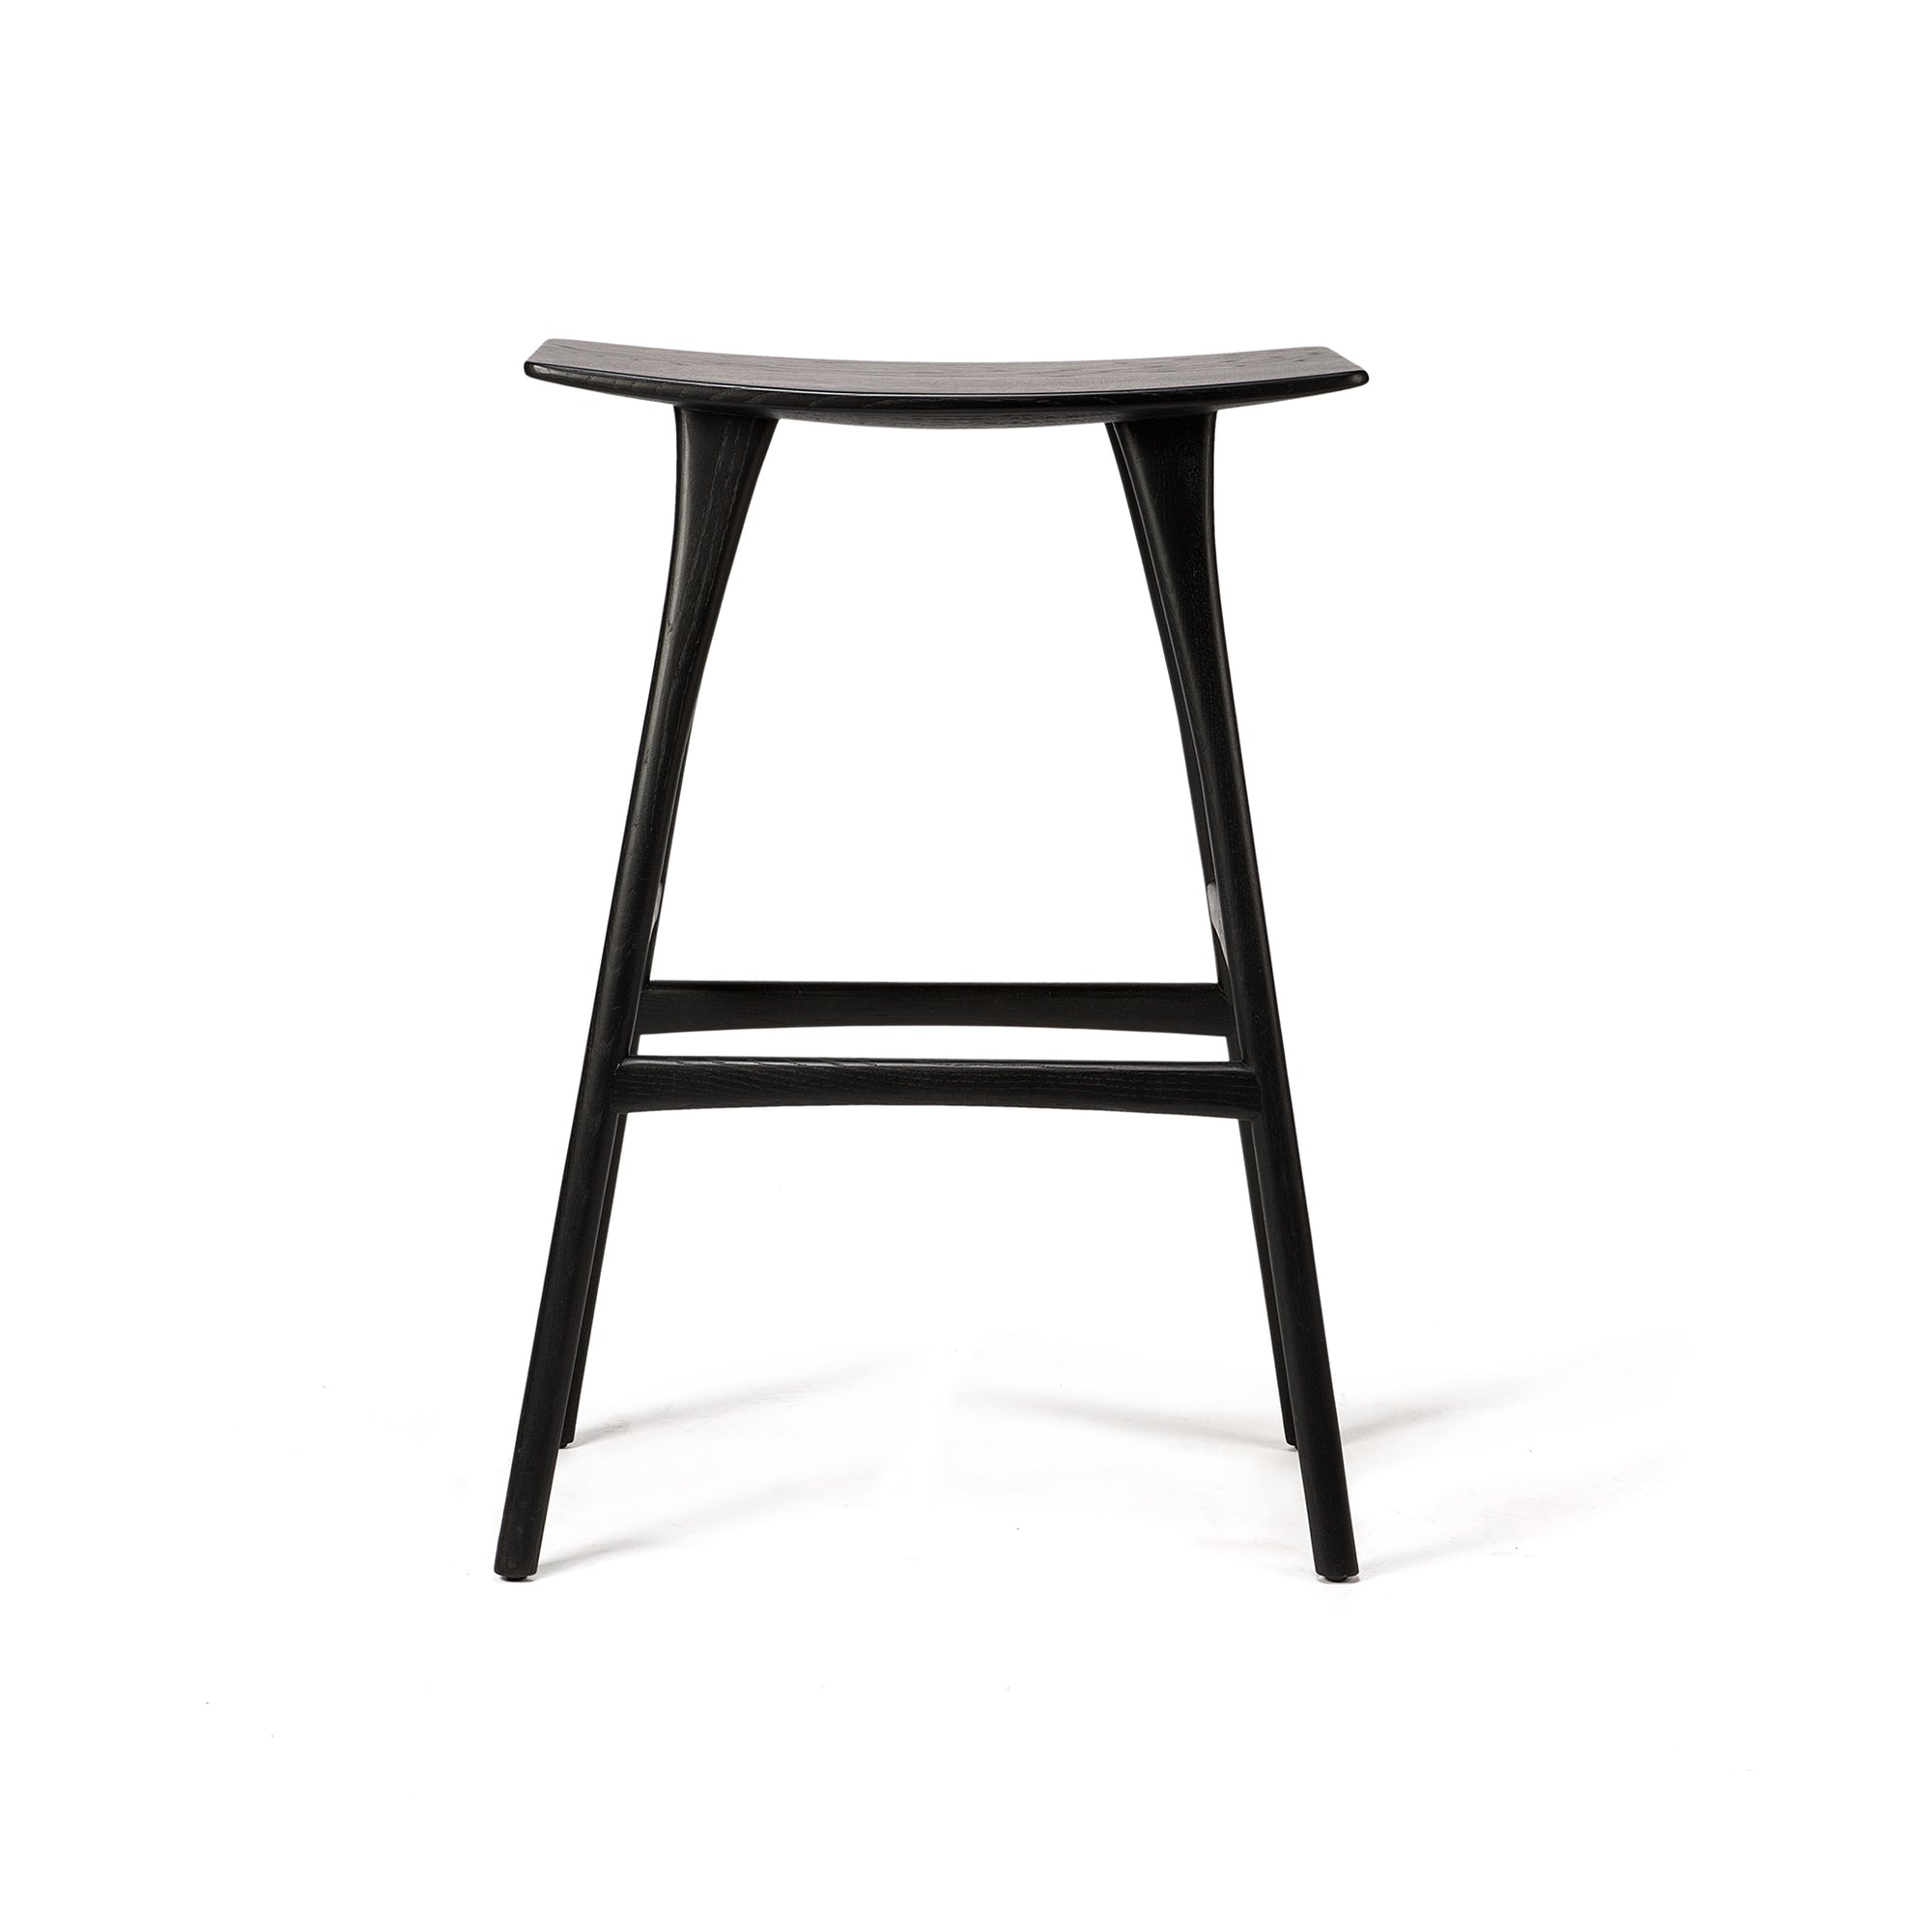 Oak Osso black bar stool